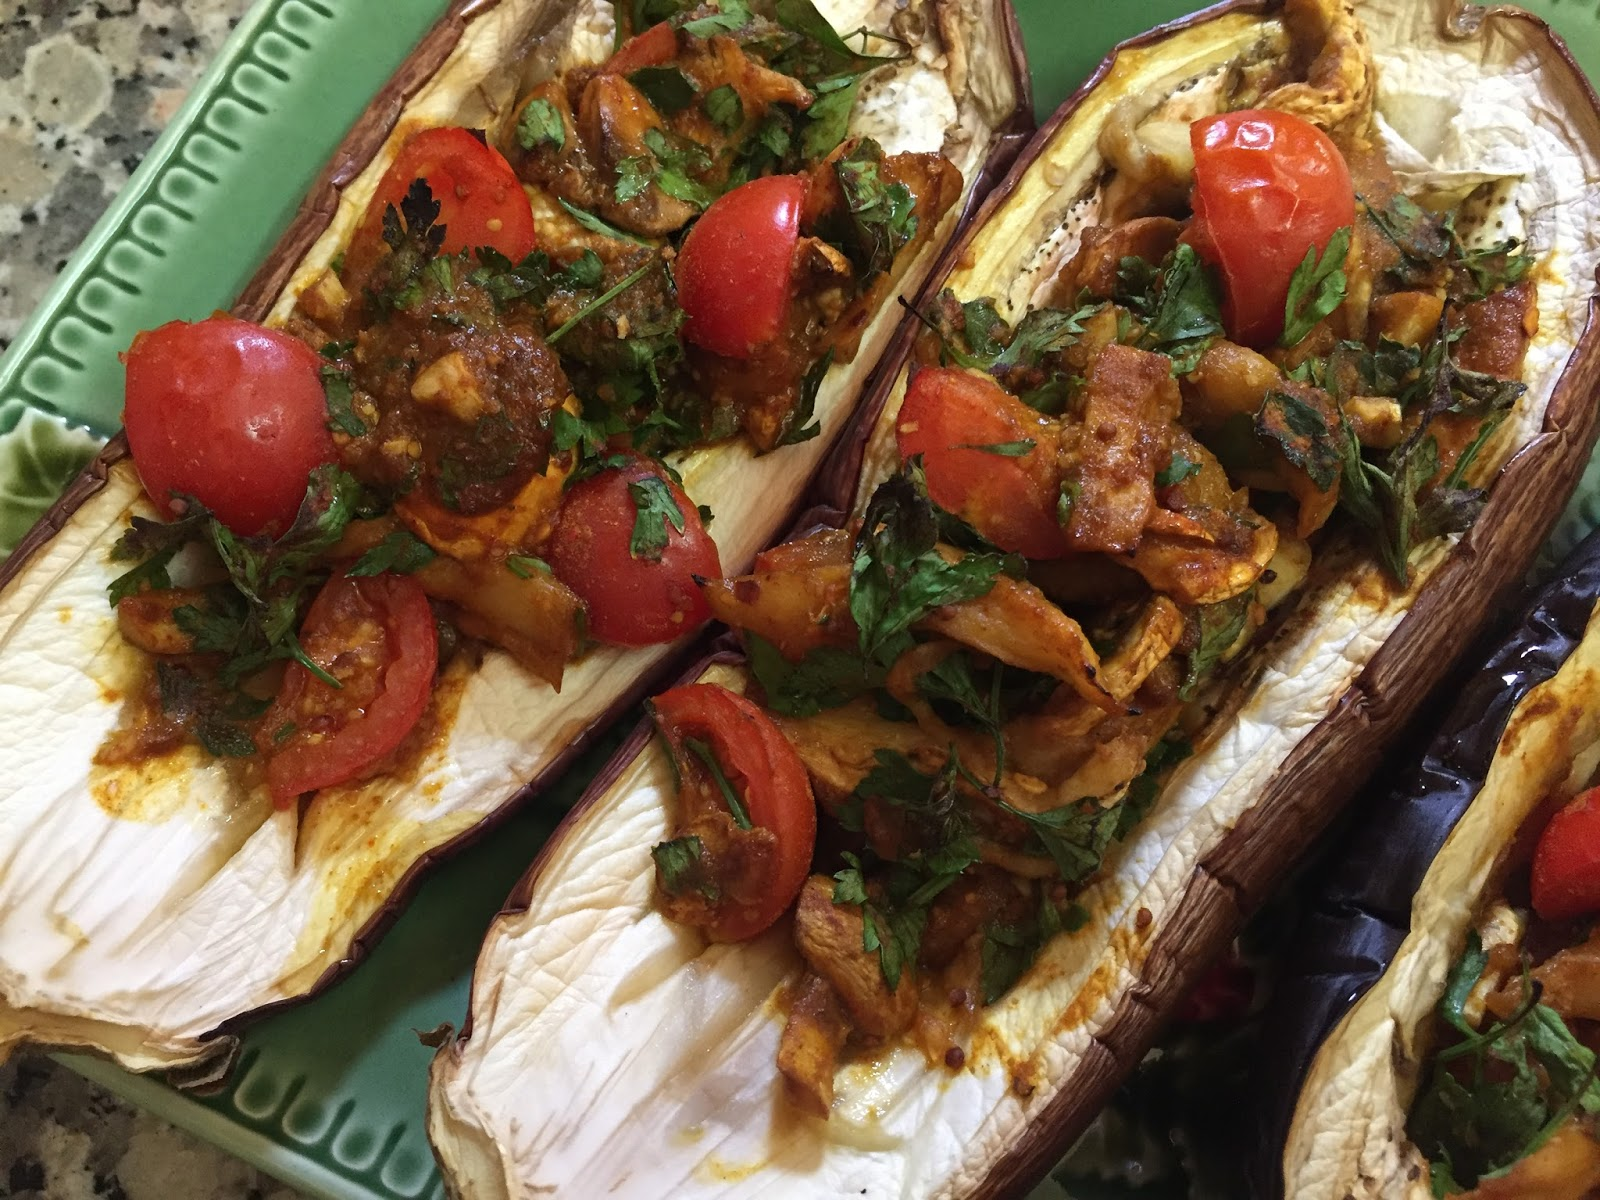 Stuffed baked eggplant aubergine clean eating vegan starter recipe here we have a lovely balance of sweet tomatoes fresh parsley garlic anda a sweet sauce of course you can get creative with the filling ideas forumfinder Gallery